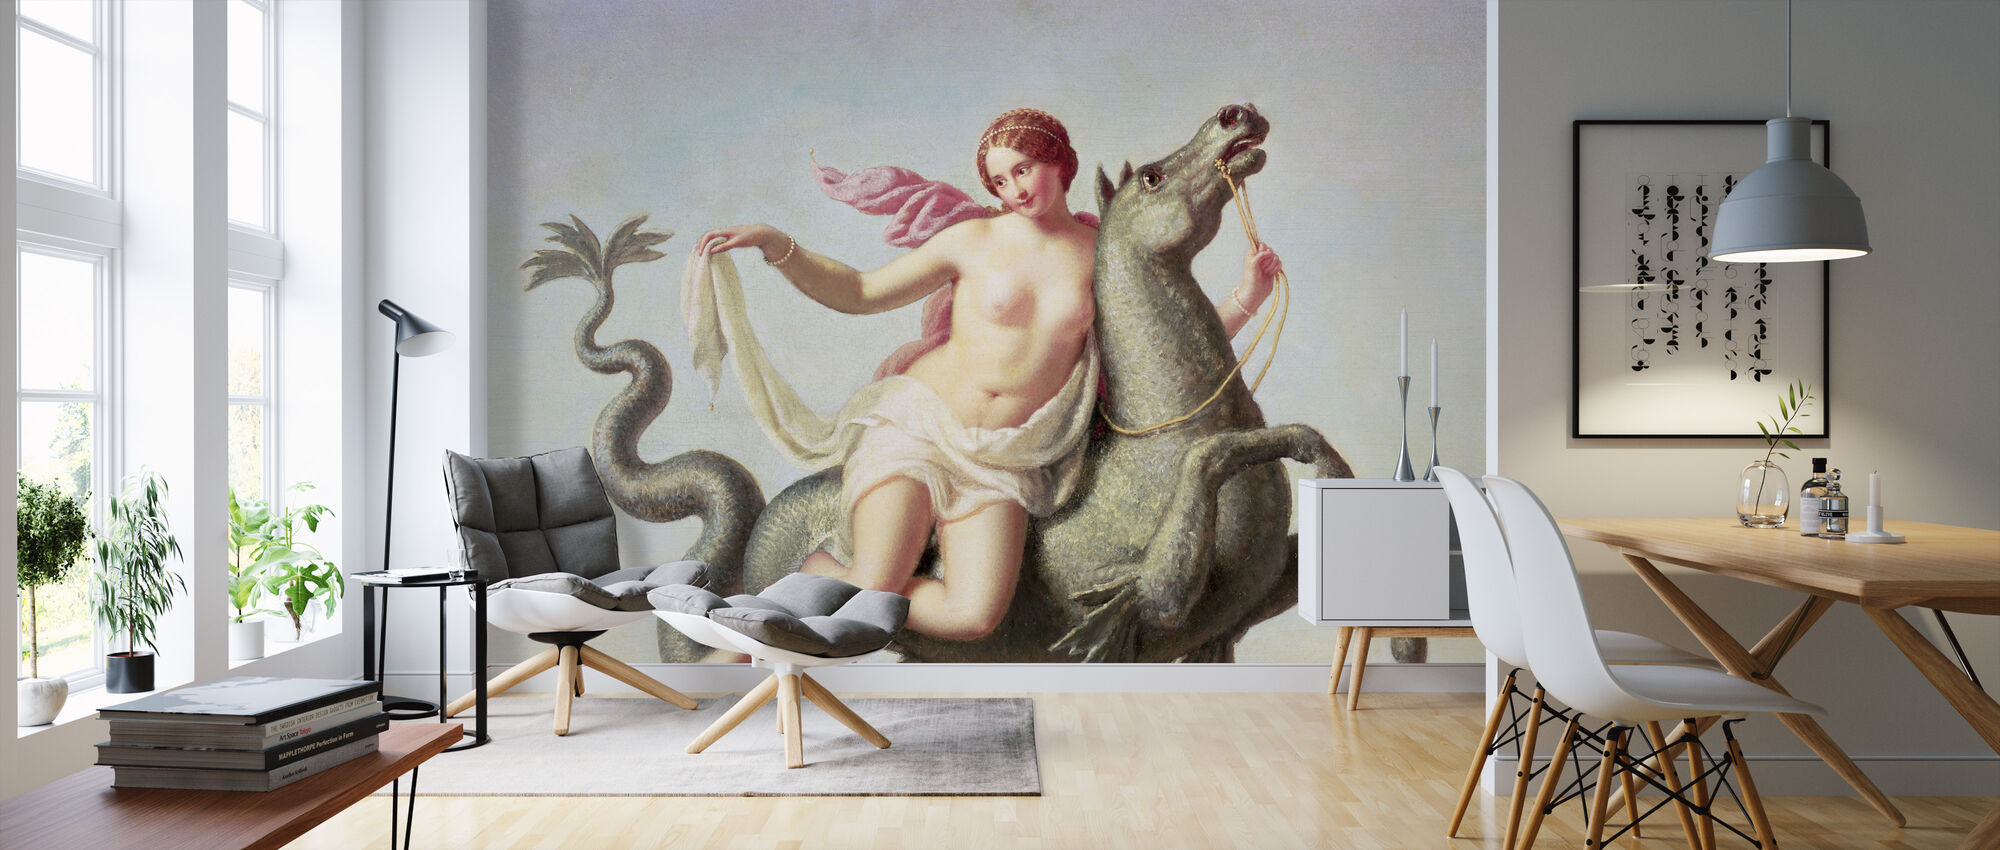 Escape of Galatea - Michelangelo Maestri - Wallpaper - Living Room